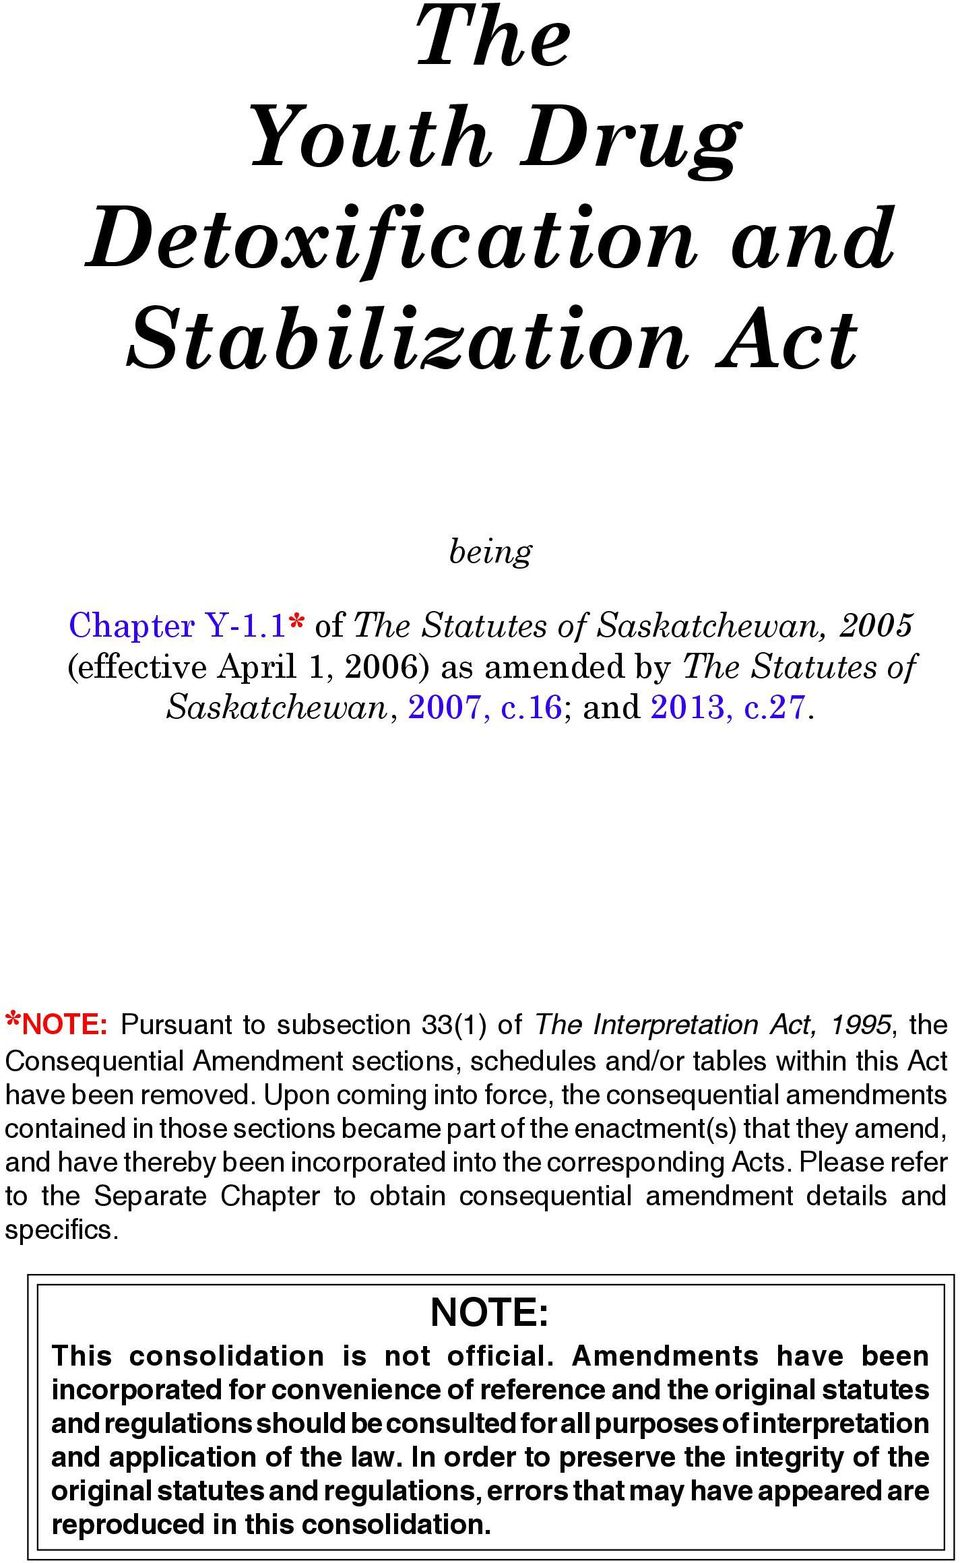 *NOTE: Pursuant to subsection 33(1) of The Interpretation Act, 1995, the Consequential Amendment sections, schedules and/or tables within this Act have been removed.